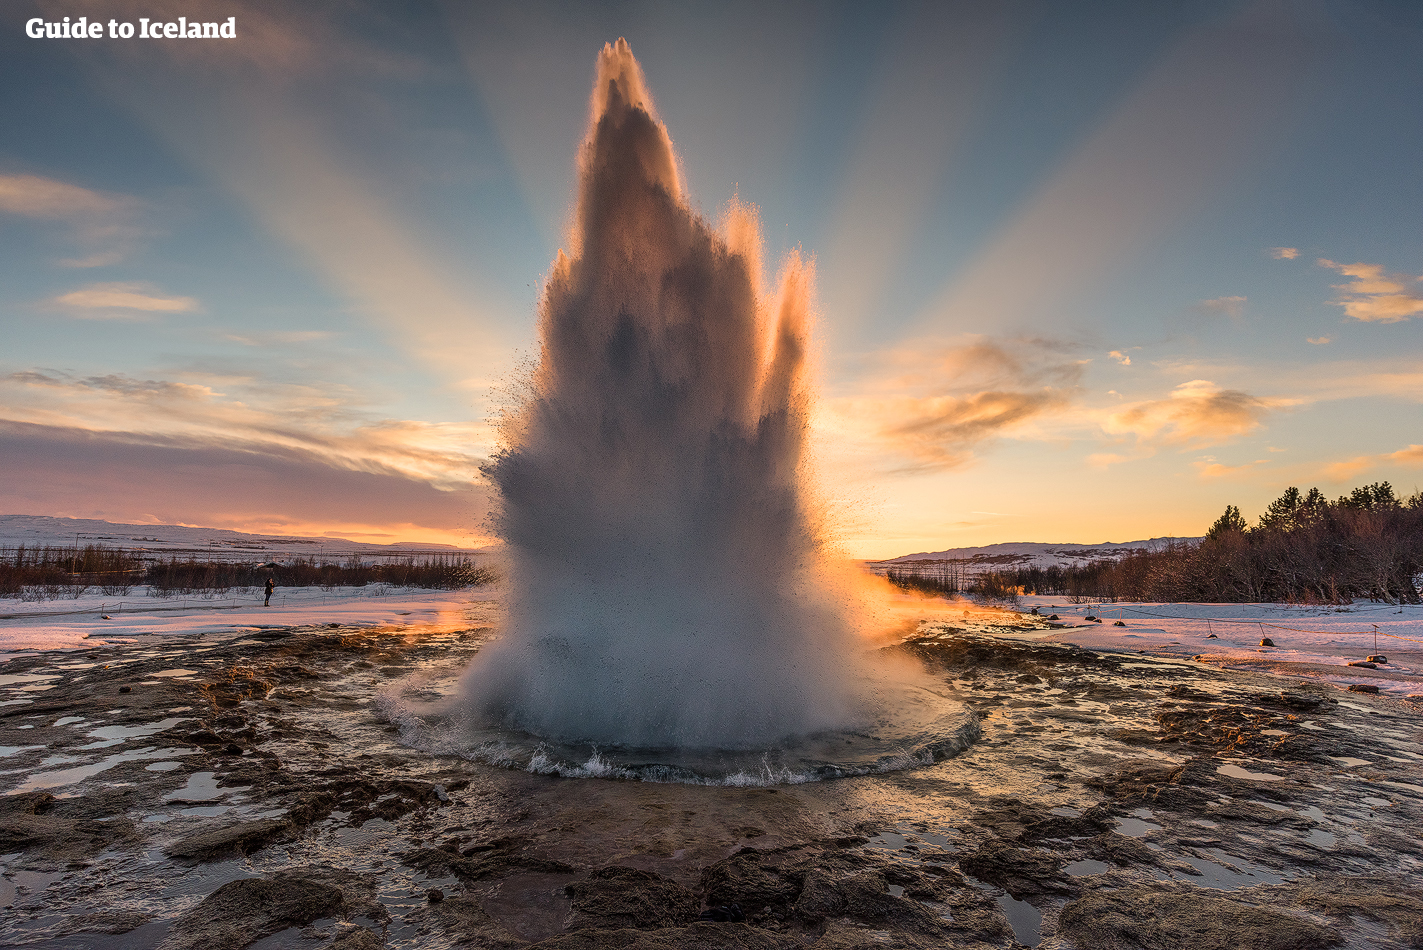 Strokkur geyser in Geysir geothermal area erupting in the winter sun